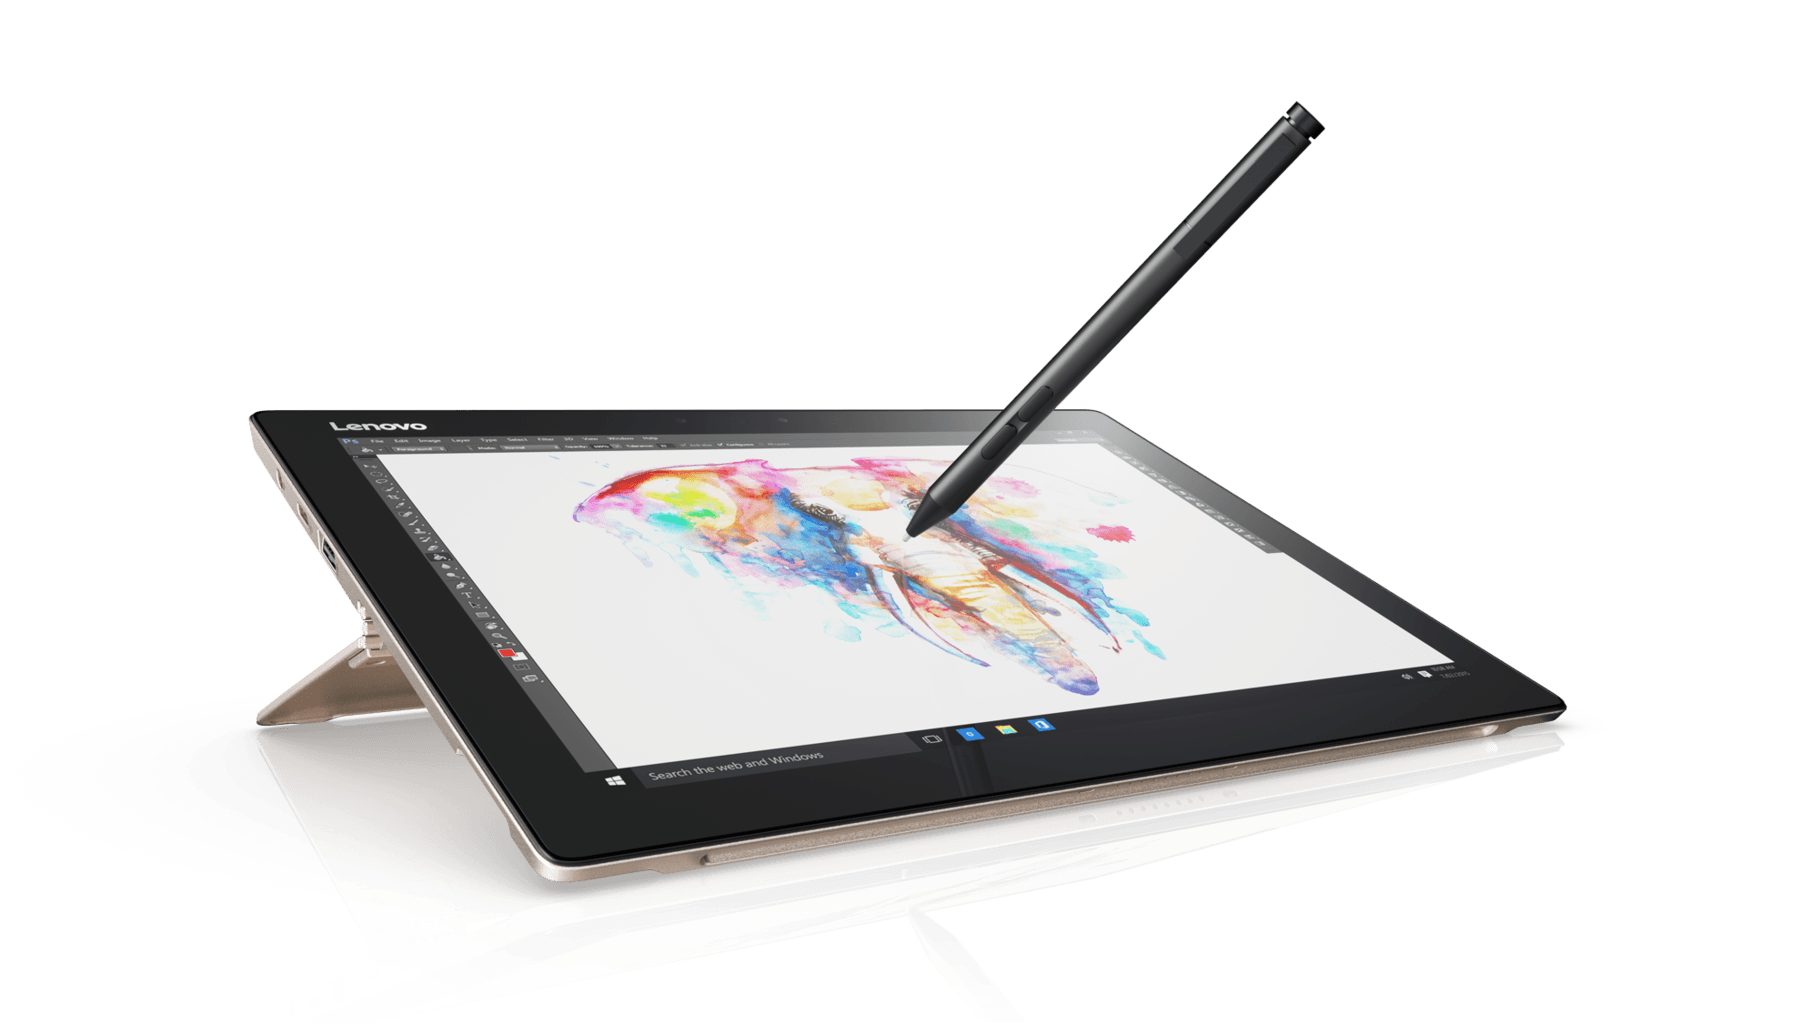 Drawing surface stylus. Lenovo unveils its new